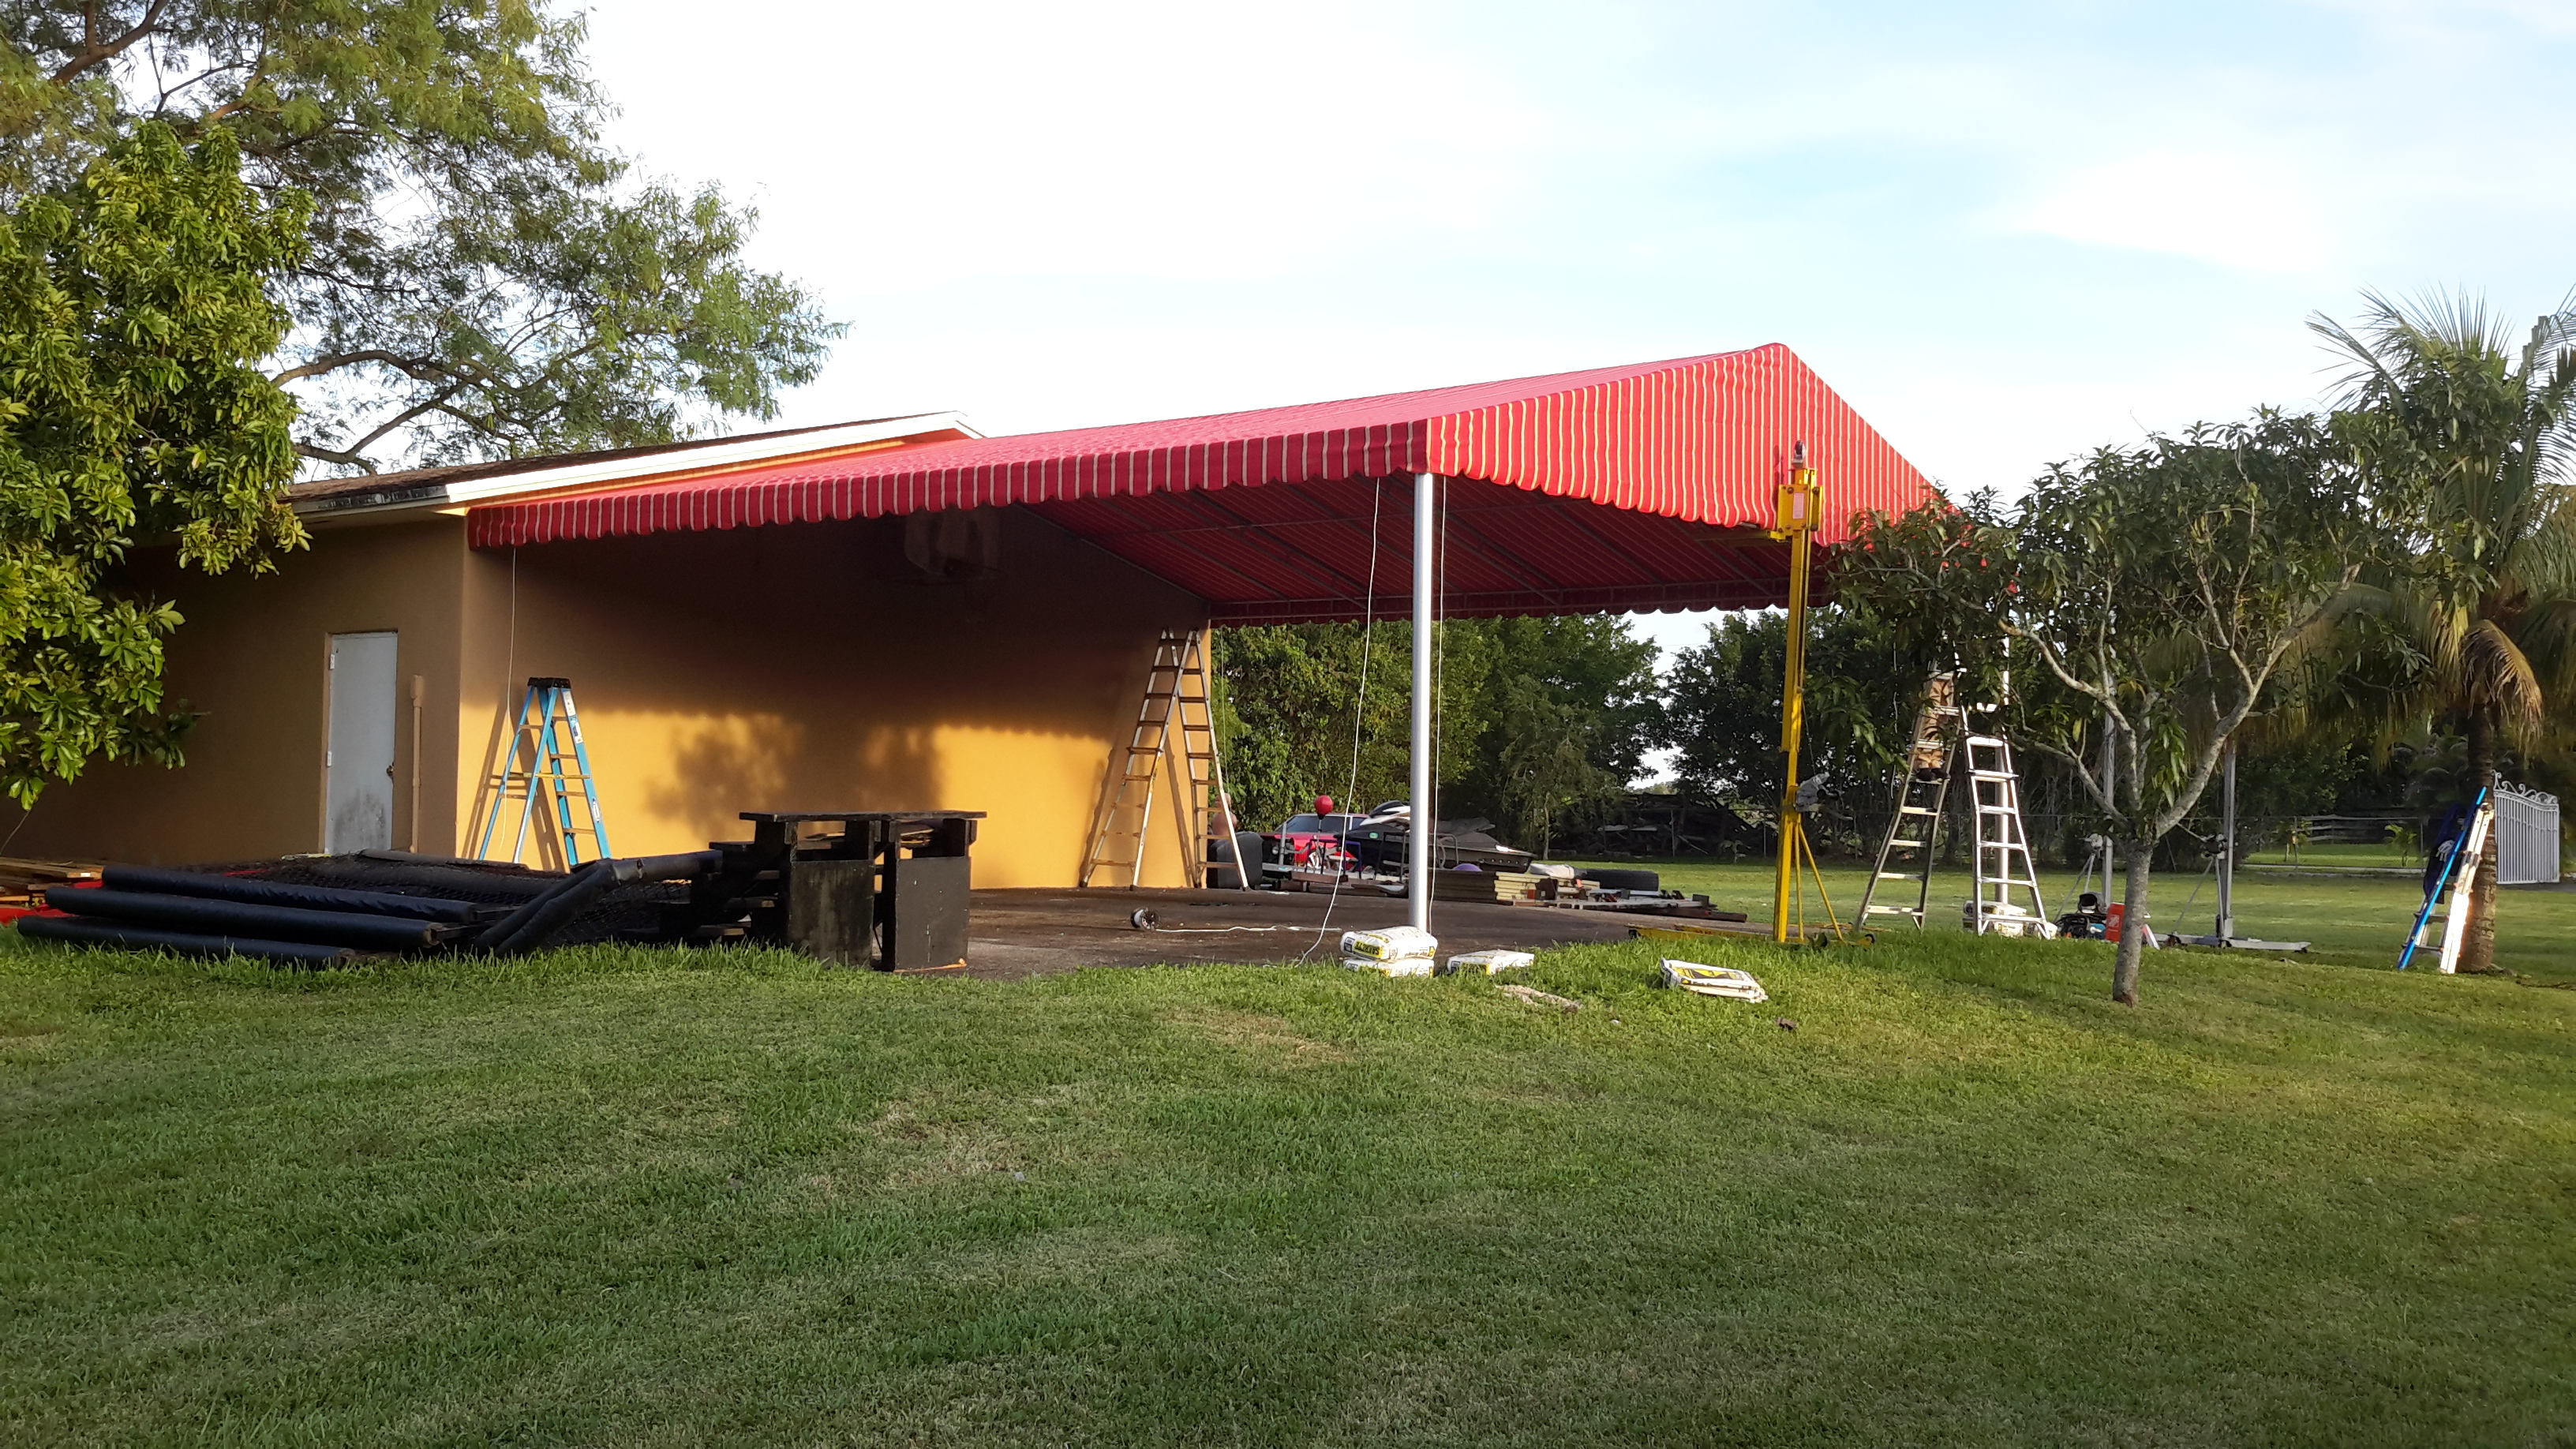 Awesome The Best Price And Quality In Carport And Awnings Of South Florida.